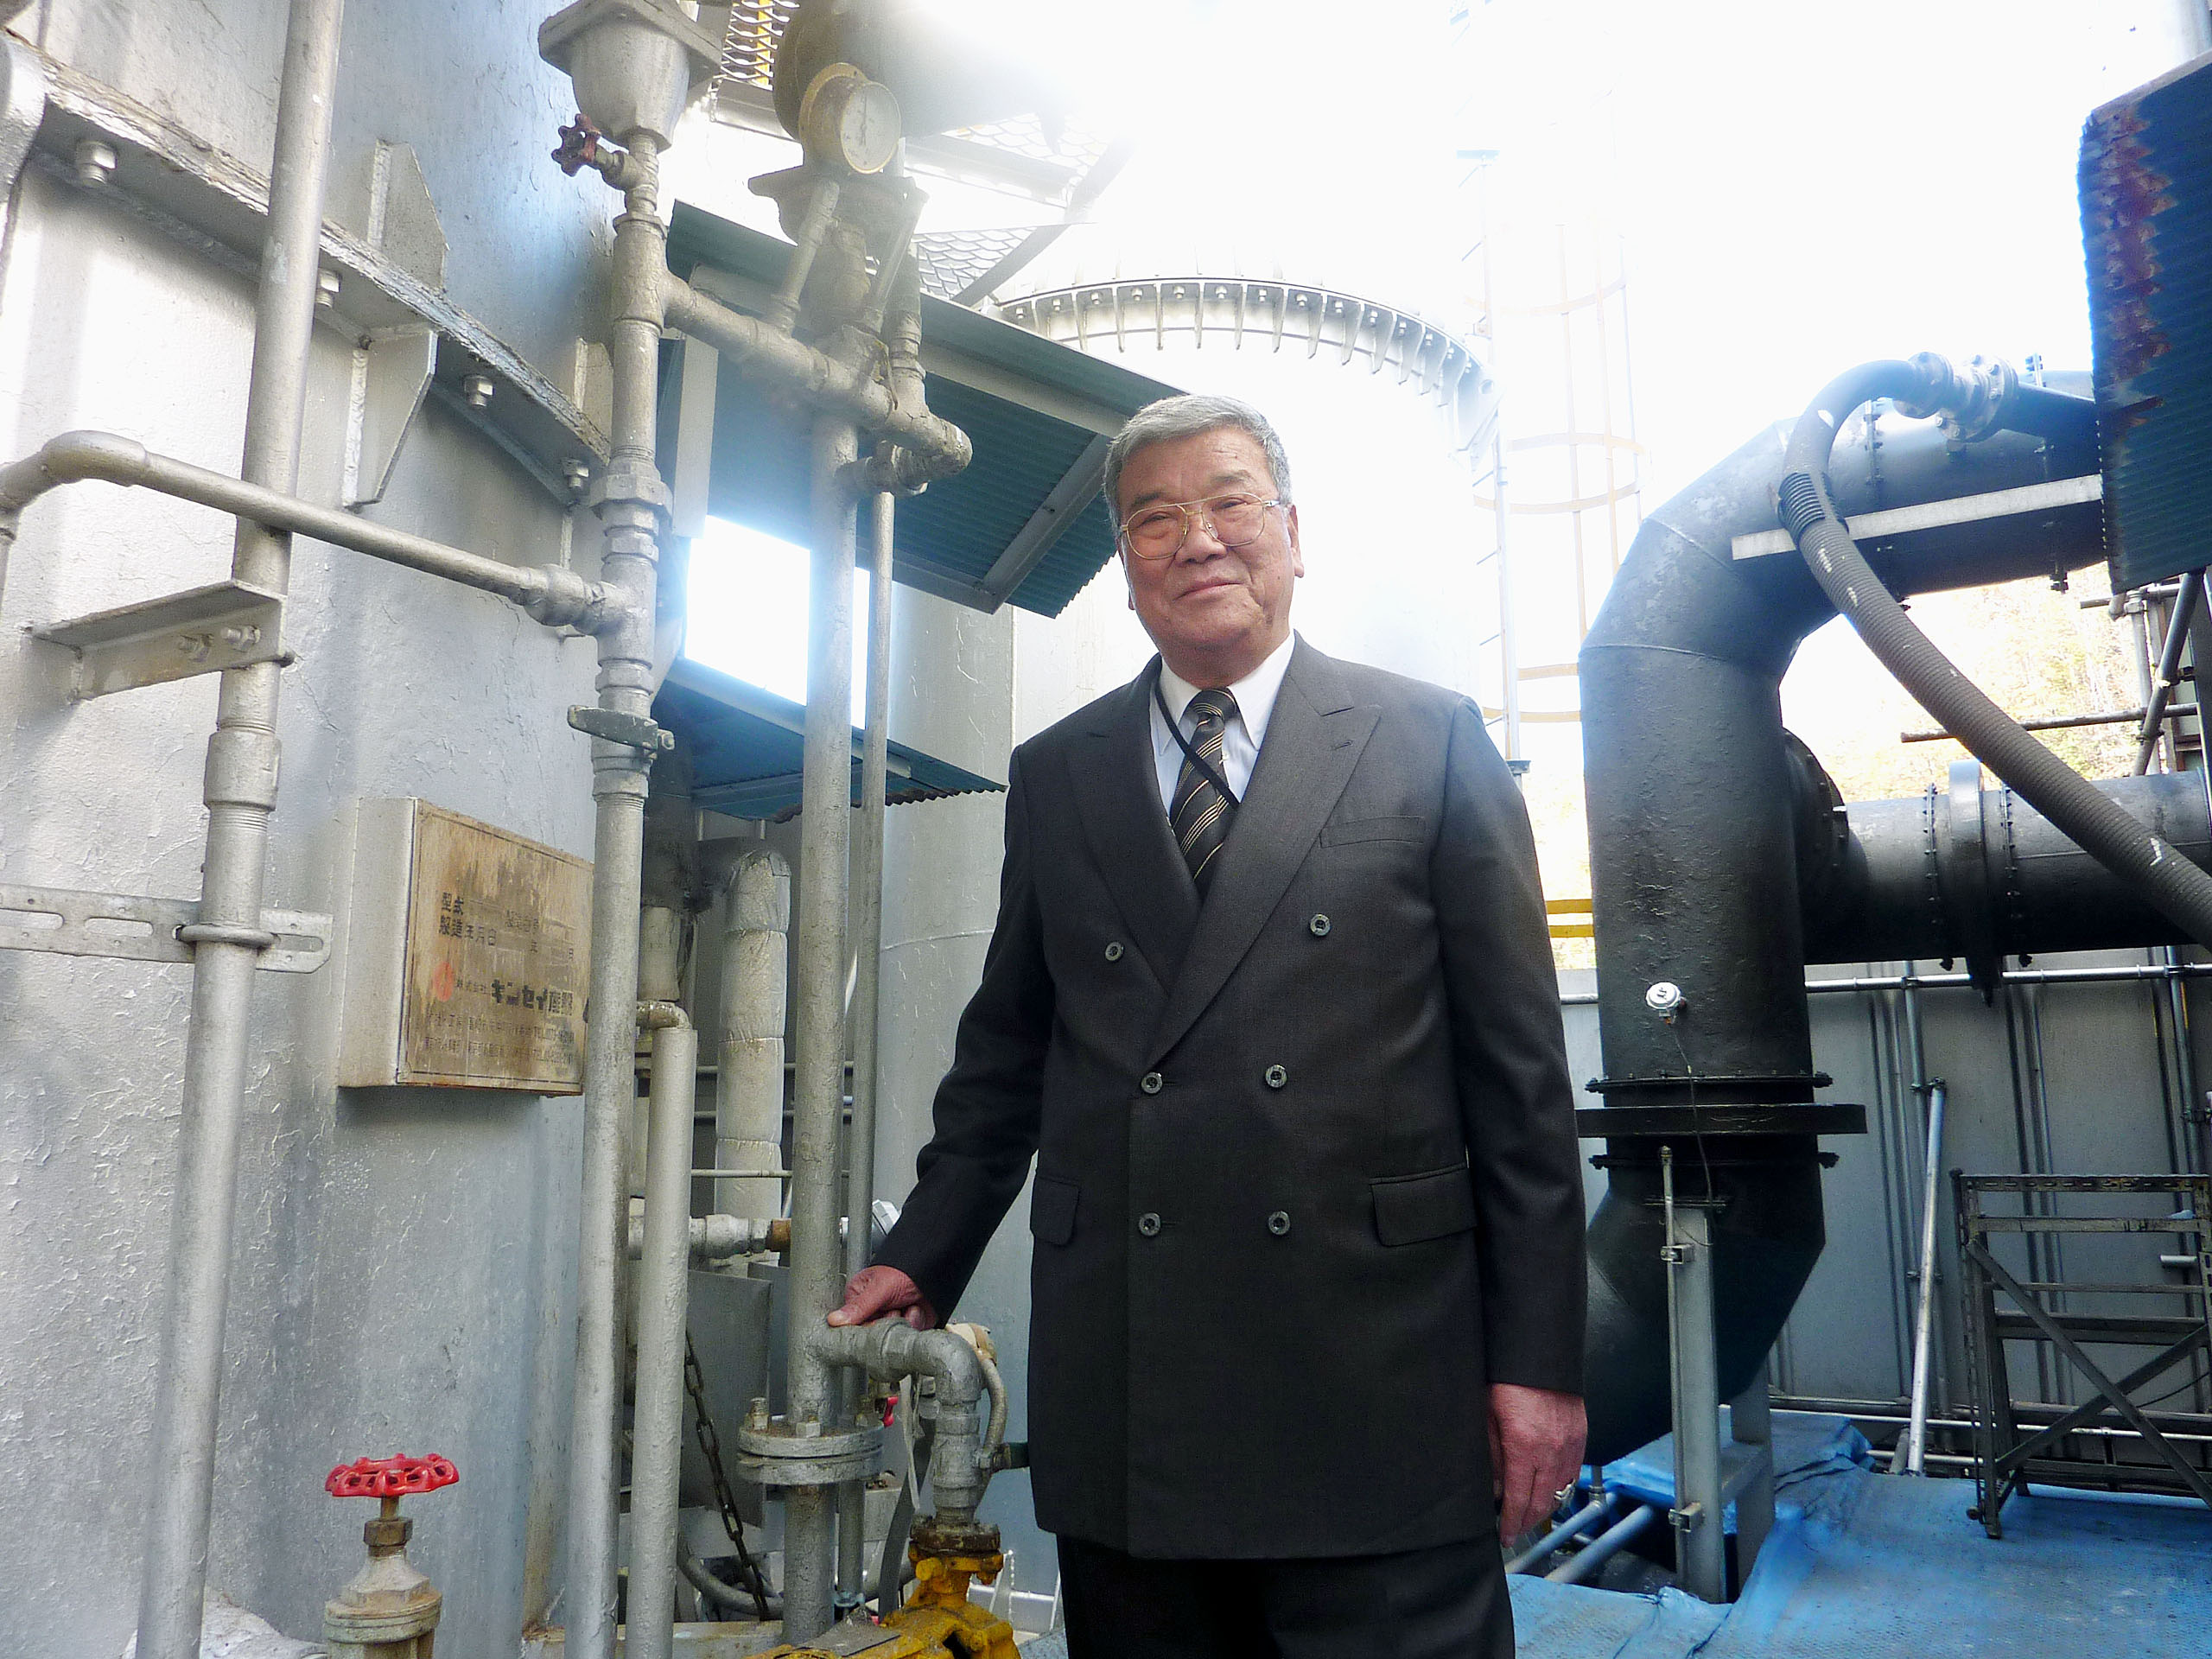 Victim: Hideaki Ikeda, president of Shouei Unso K.K., stands in front of the company's industrial waste disposal facility Dec. 3 in Hiroshima. | KYODO